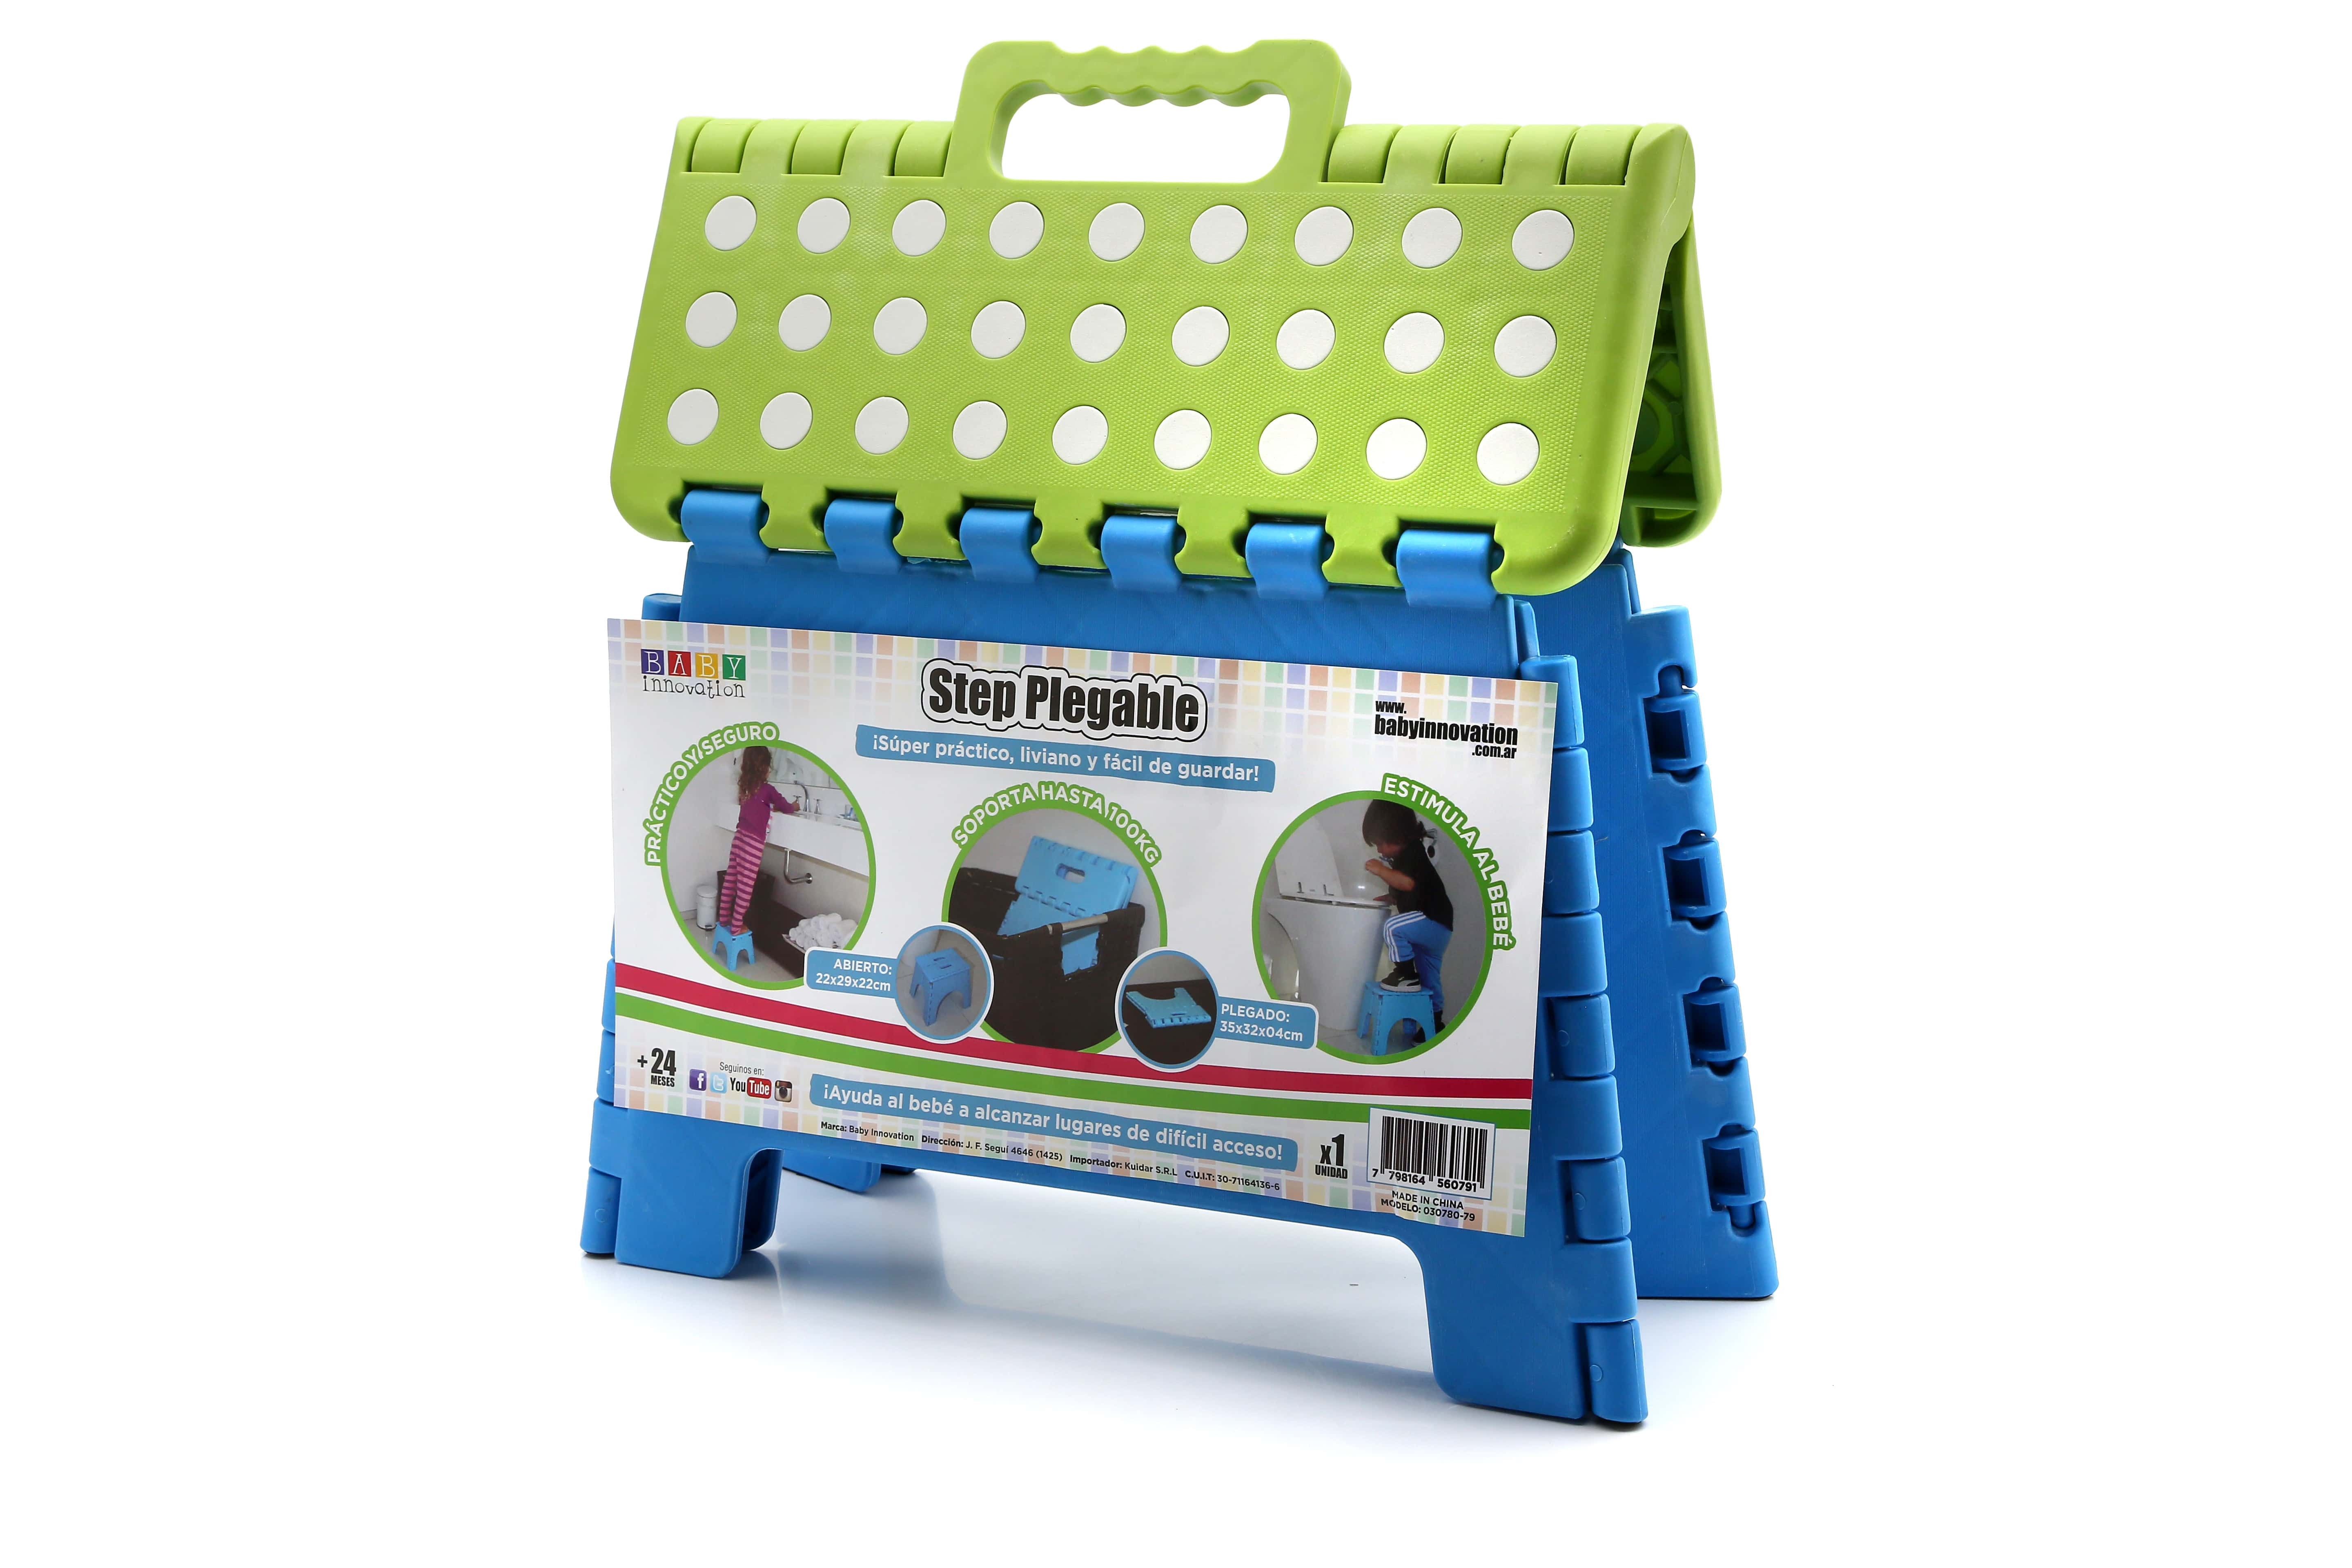 Banquito Plegable Baby Innovation Mas independencia